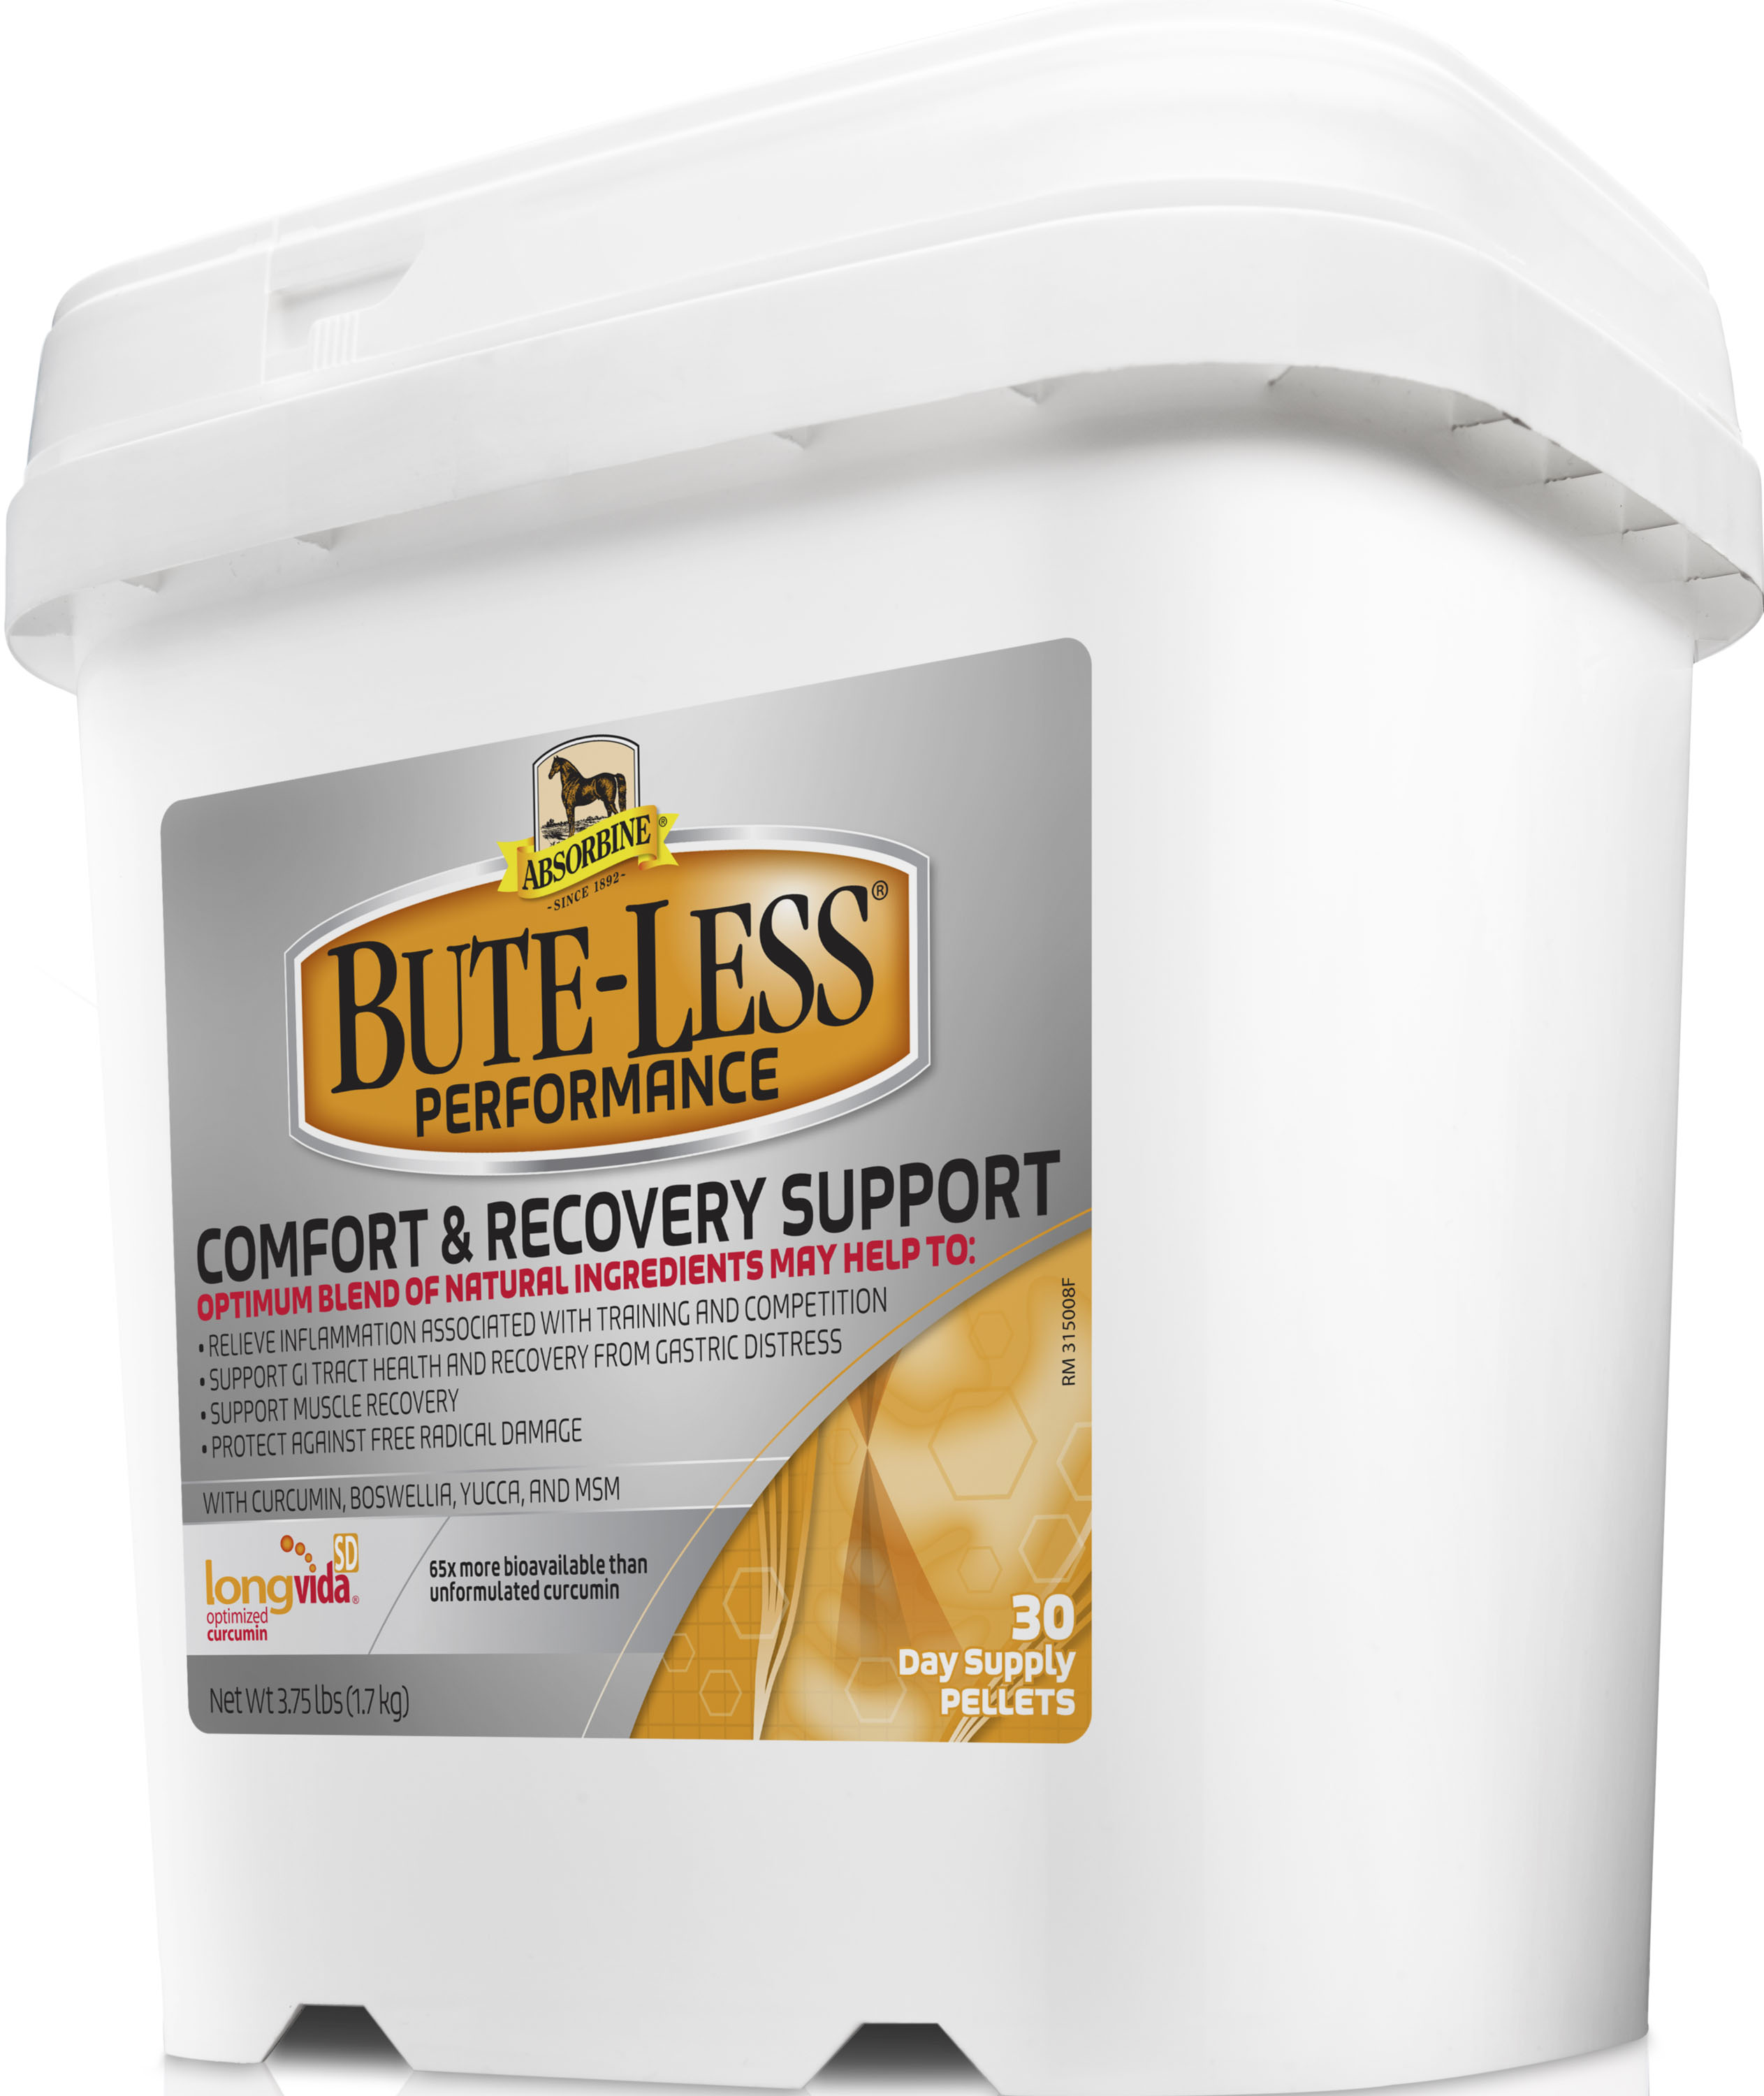 Absorbine Bute-Less Peformance Comfort & Recovery Support Horse Supplement, 3.75-lb